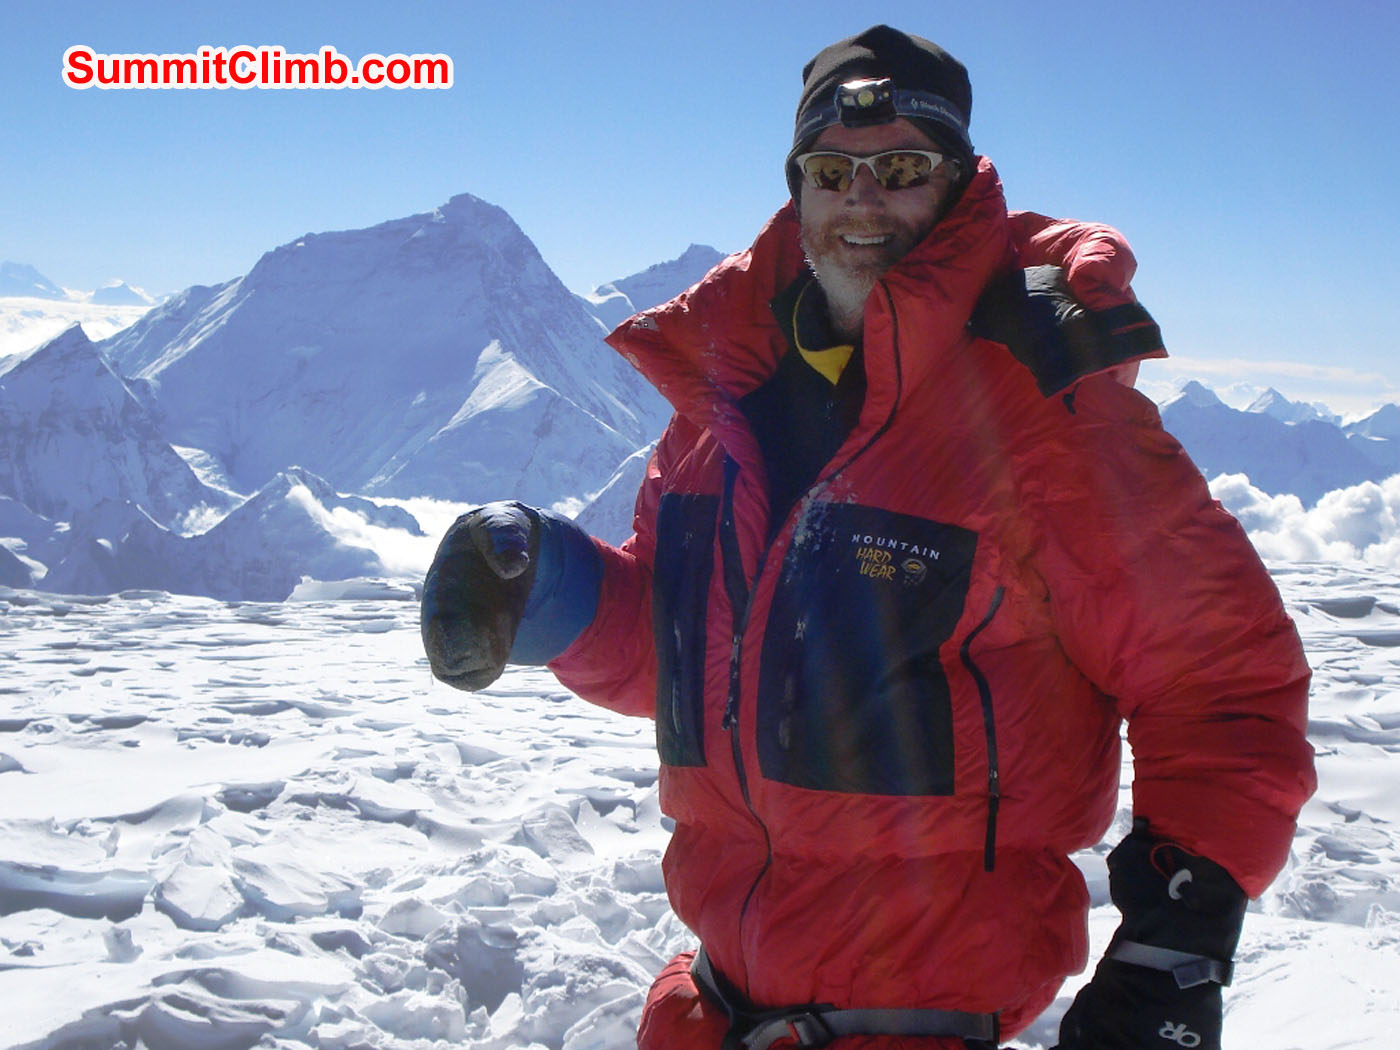 Glenn with view of Everest on summit of Cho Oyu. Jangbu Sherpa Photo.